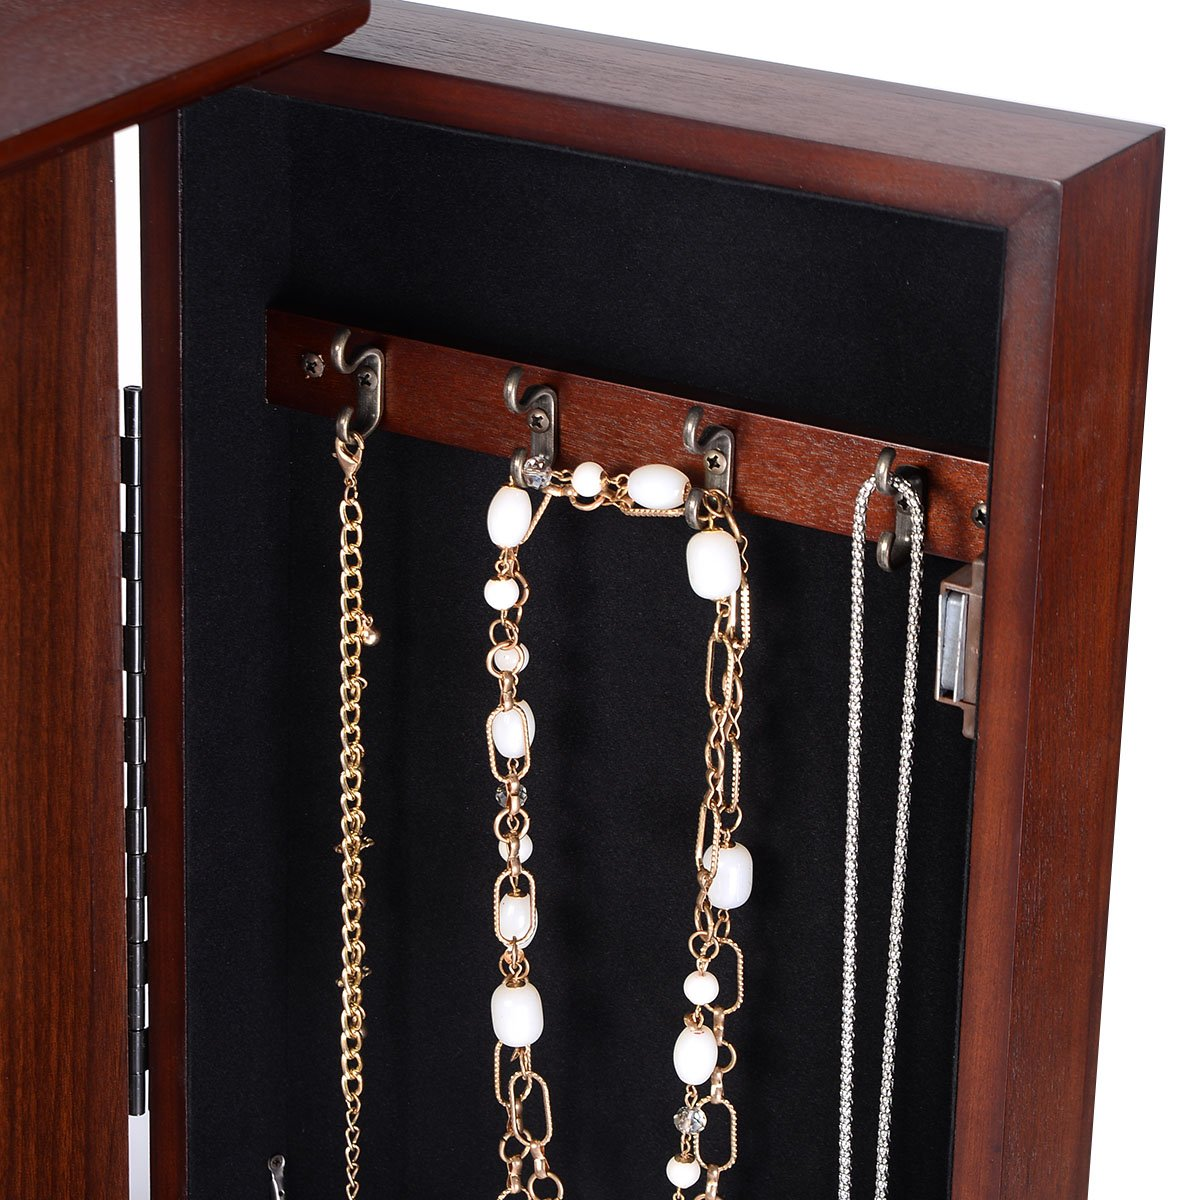 Giantex Wood Jewelry Cabinet Armoire Storage Box Chest Stand Organizer Necklace by Giantex (Image #8)